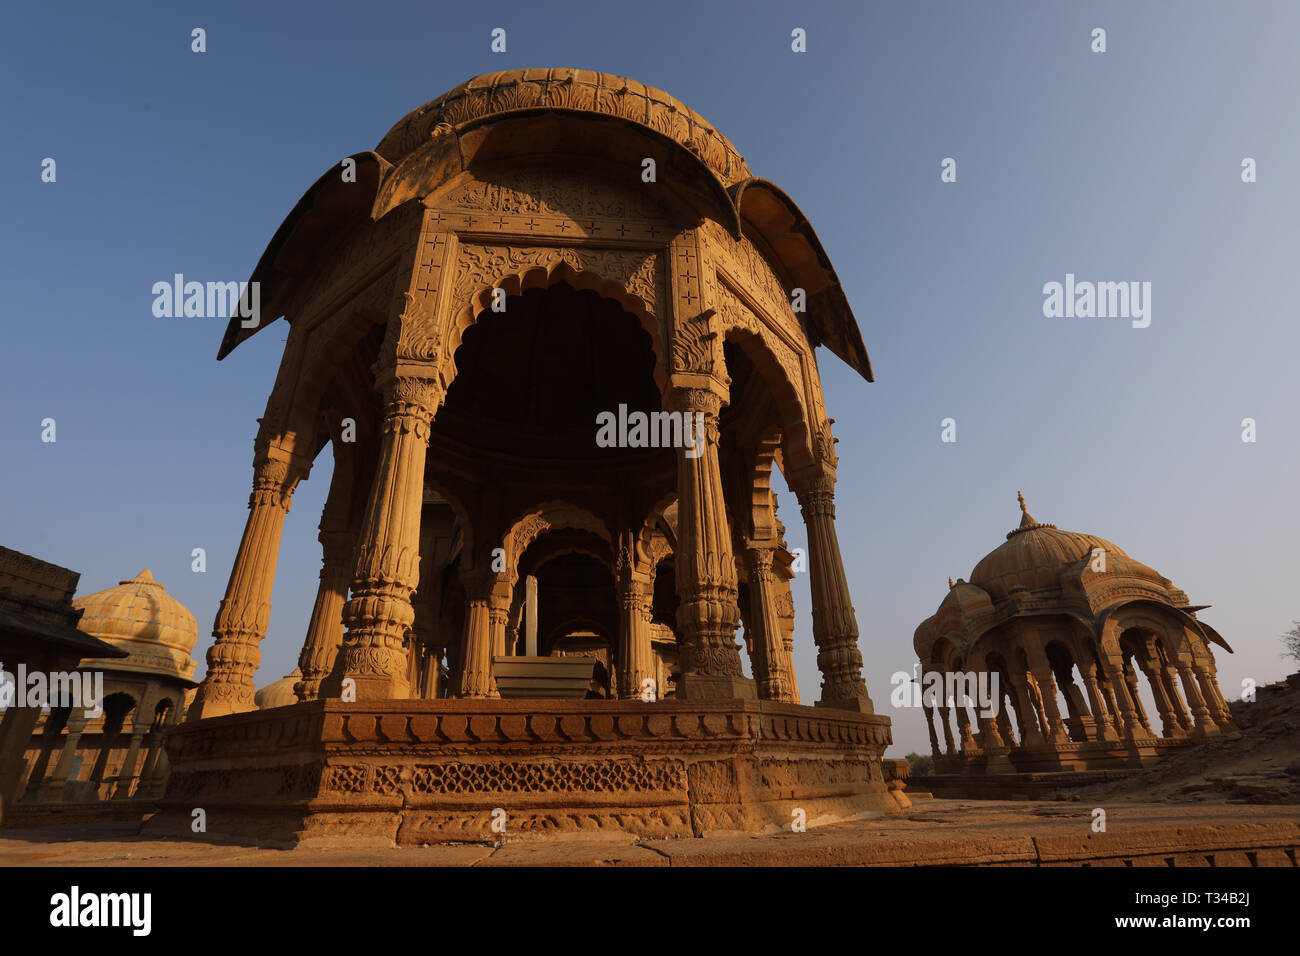 Bada Bagh, Jaisalmer, Rajasthan, India --- Cenotaphs old burial site of the rulers of jaisalmer Desert - Stock Image